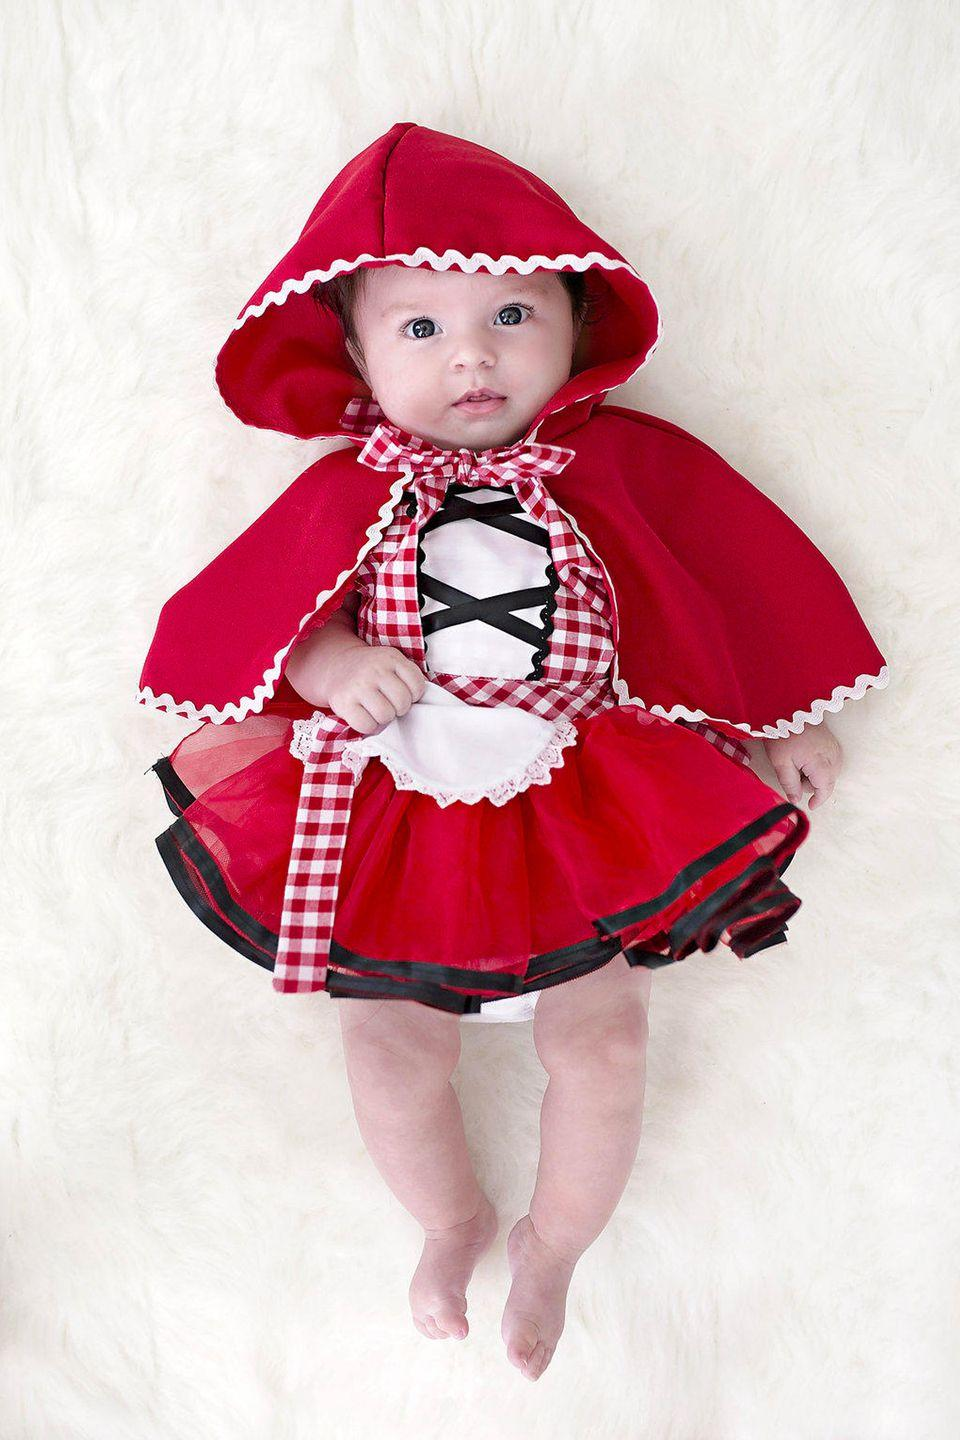 "<p>$26</p><p><a href=""https://www.etsy.com/listing/537565822/red-riding-hood-costume-baby-red-riding"" rel=""nofollow noopener"" target=""_blank"" data-ylk=""slk:SHOP NOW"" class=""link rapid-noclick-resp"">SHOP NOW</a></p><p>The hood on this elaborate costume <em>kills </em>us. If you really want to impress the neighbors, dress her older sibling up as a wolf.</p>"